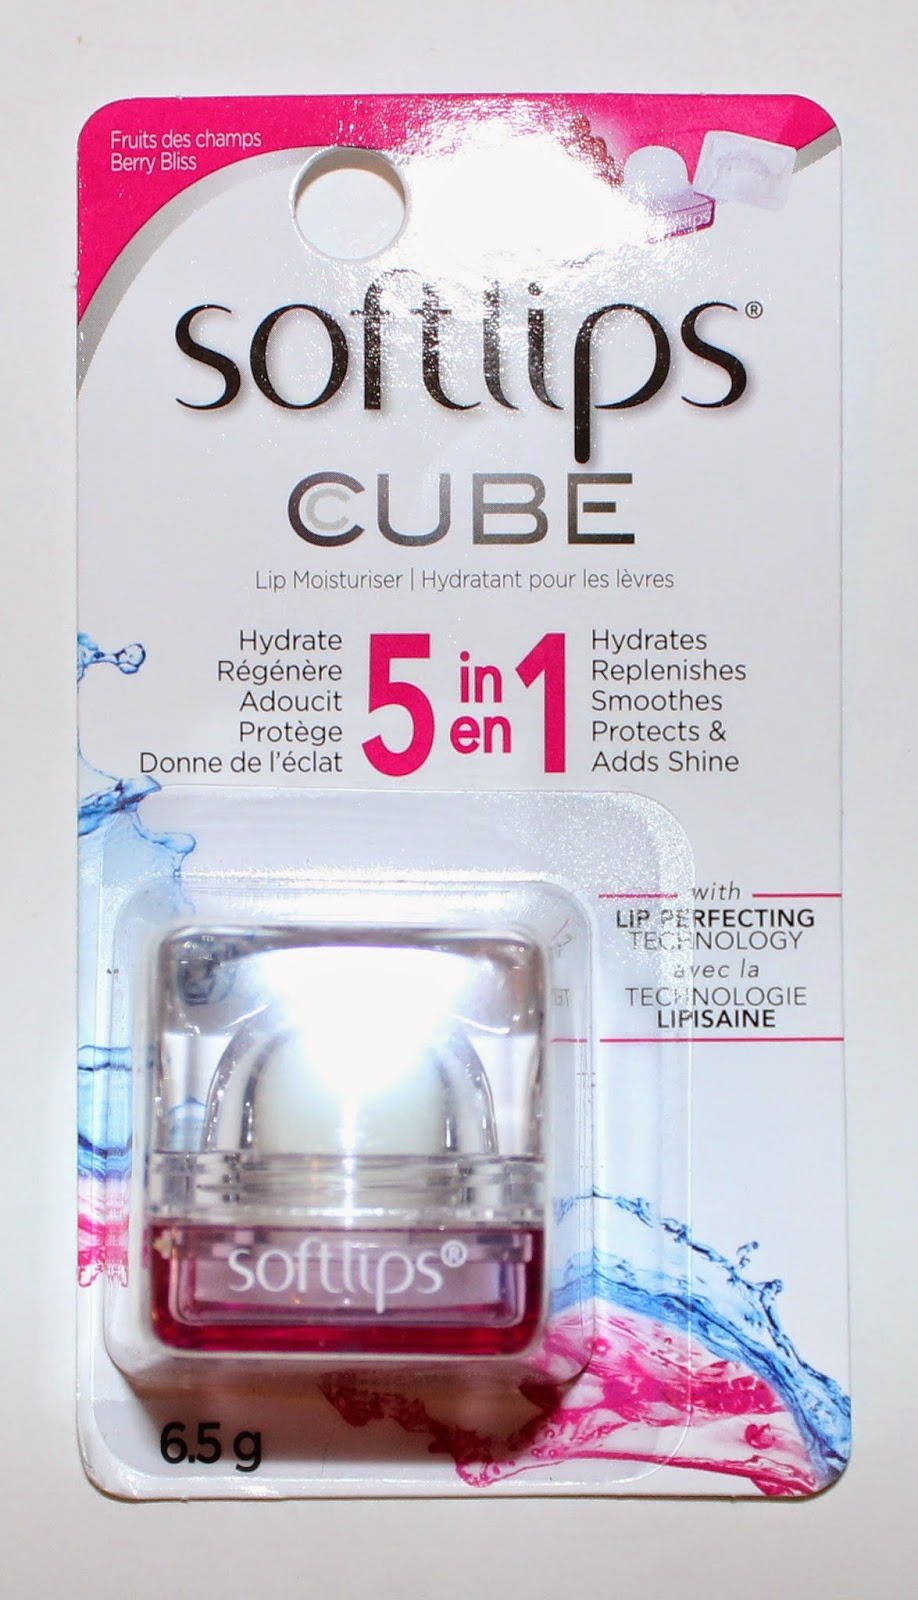 Softlips CUBE in Berry Bliss